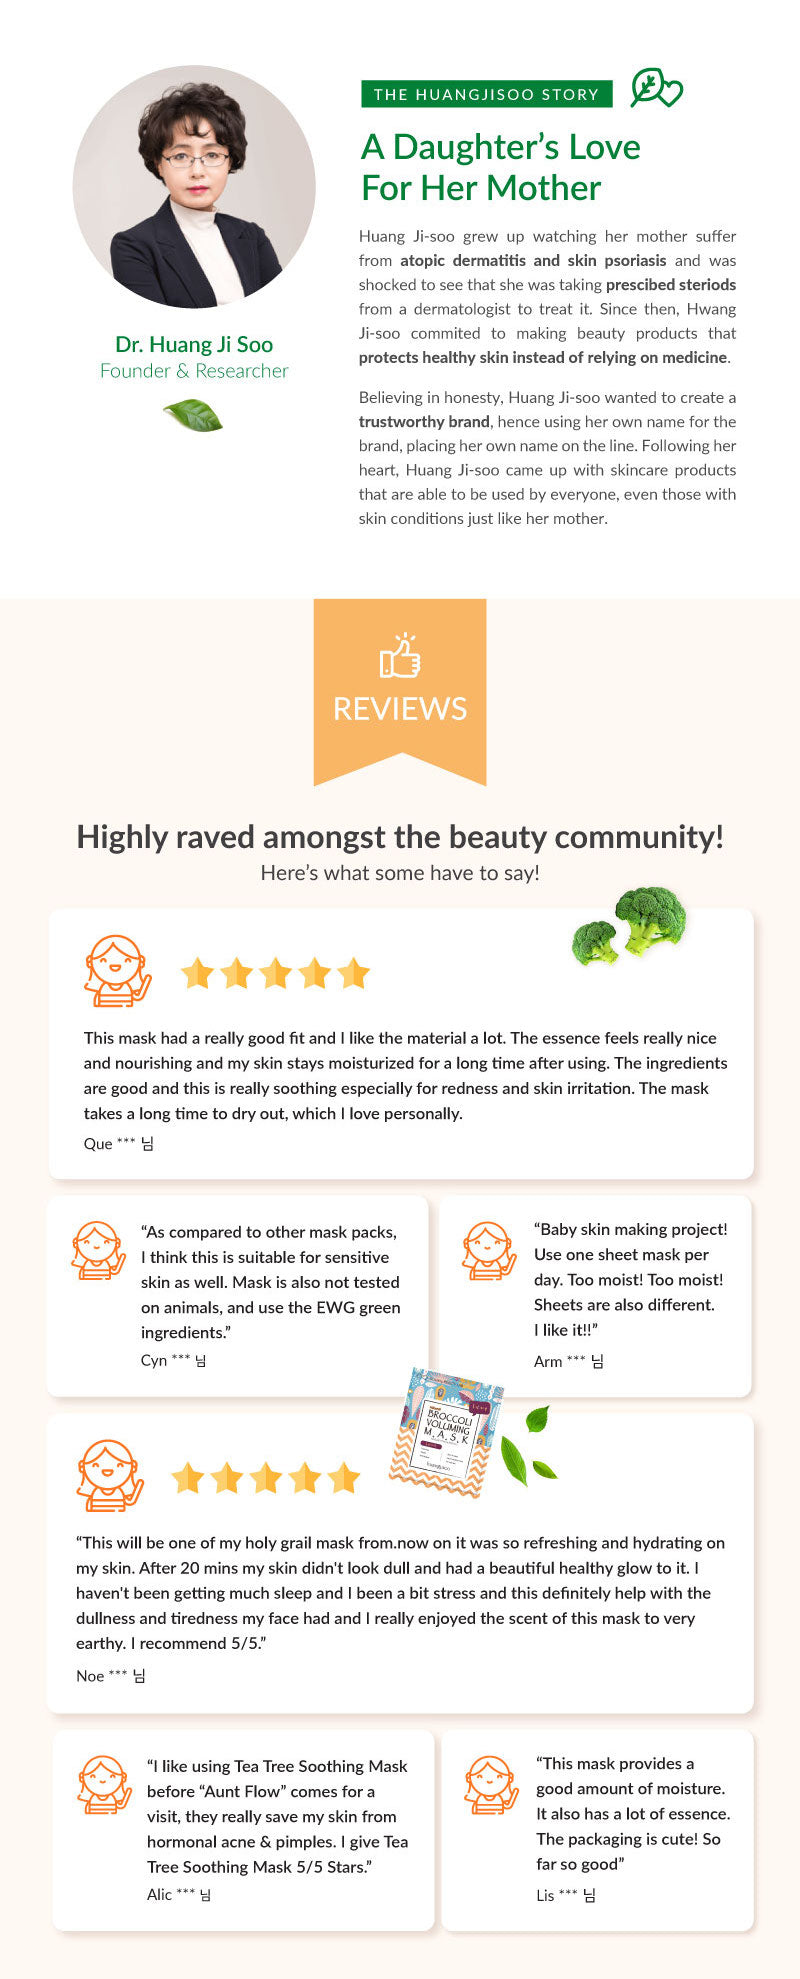 Dr. Huang Ji Soo created the brand Huangjisoo out of love and dedication for her more that had super sensitive skin. She has strived to create not only skincare that is organic but also effective. Check out our reviews from the beauty community!